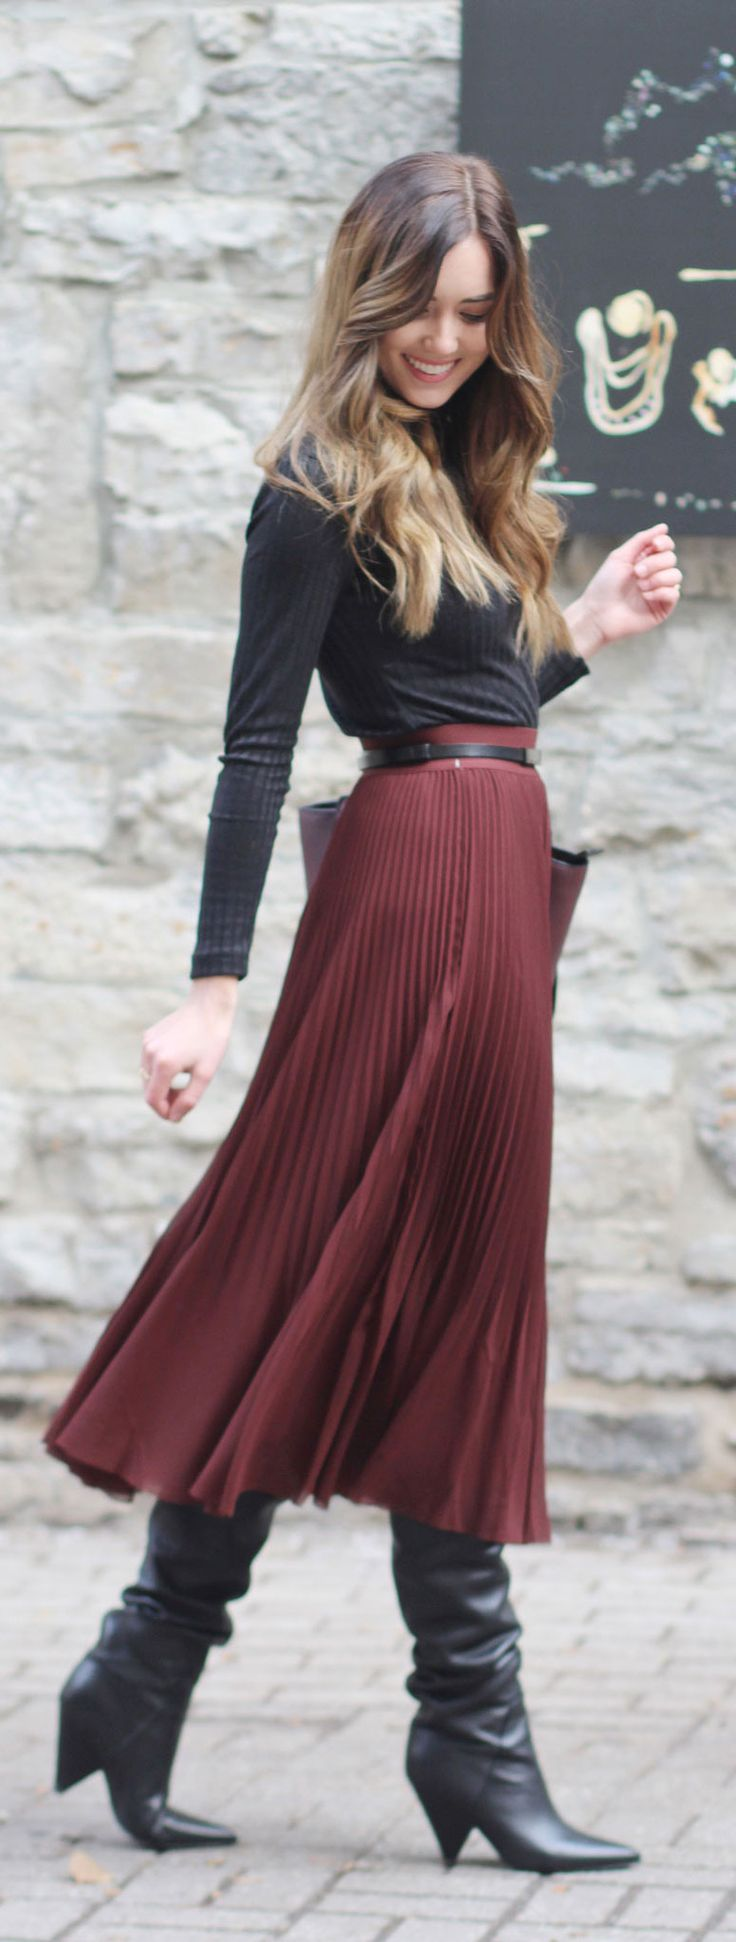 PLEATED SKIRT ALERT! This stunner is the perfect way to add some feminine vibes to a winter outfit (the leather boots are on sale!) #fashion #fashionblogger #pleats #leather #burgundy by Marie's Bazaar